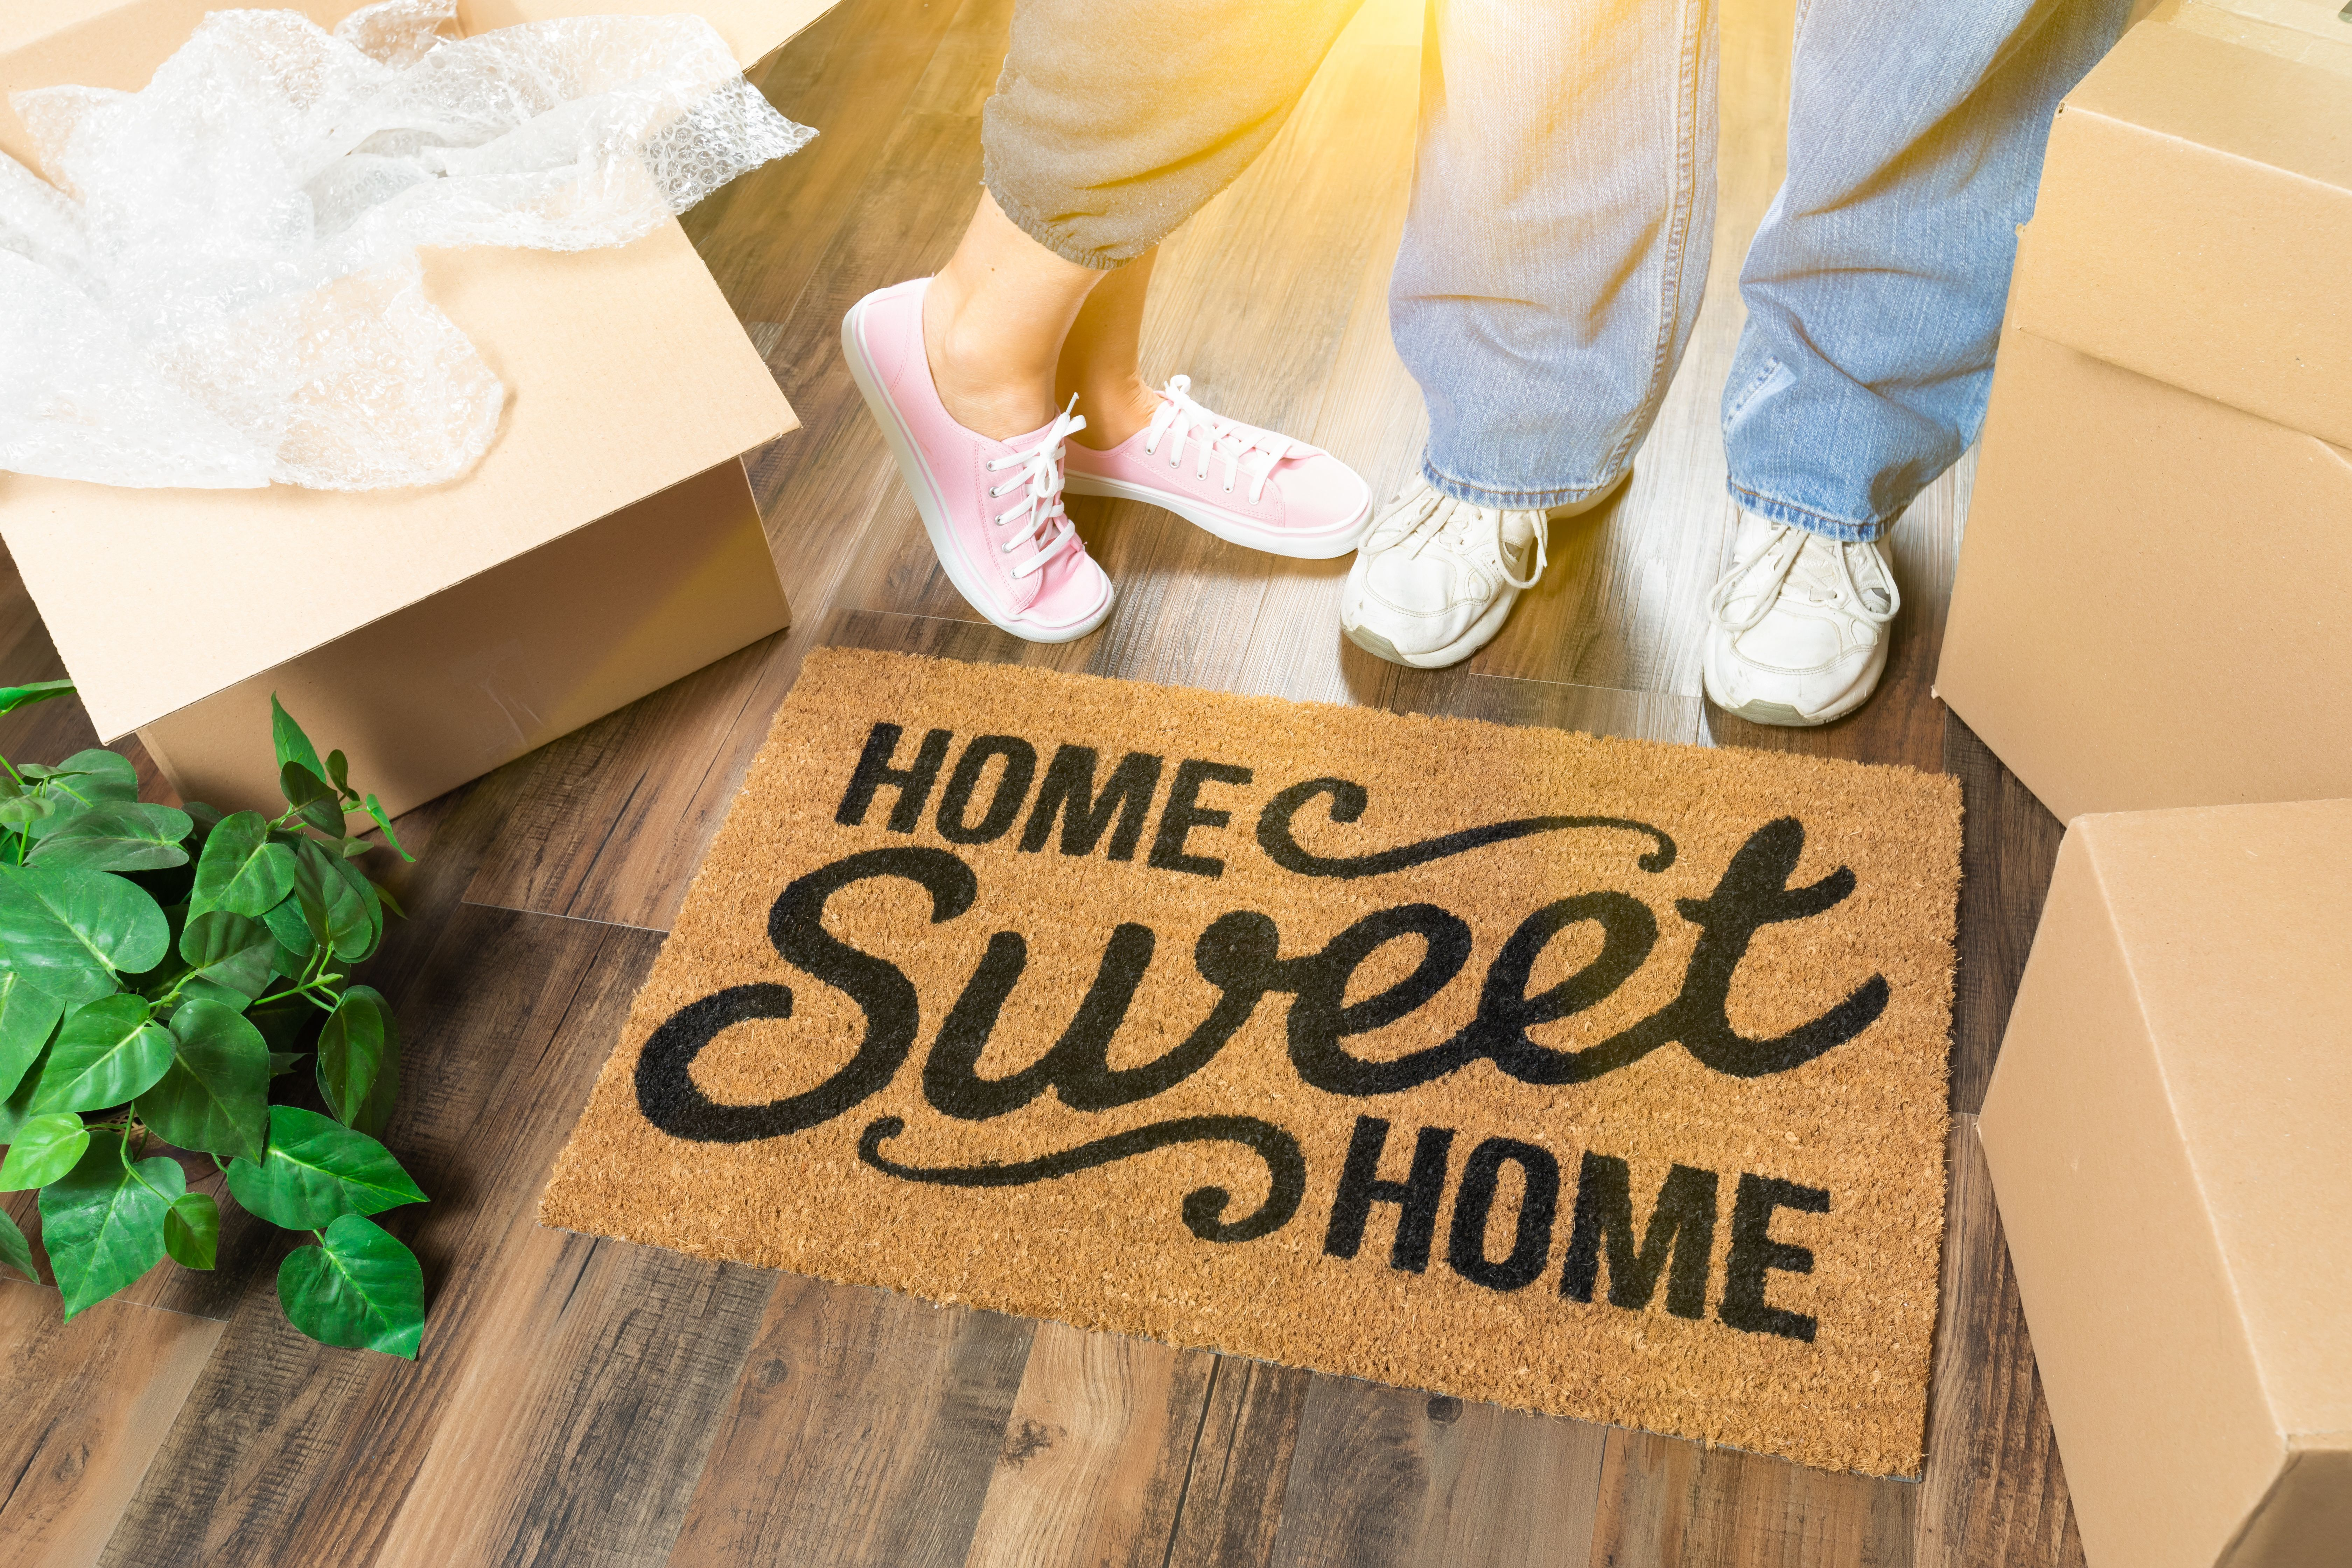 Contact our office today to set up your very own home